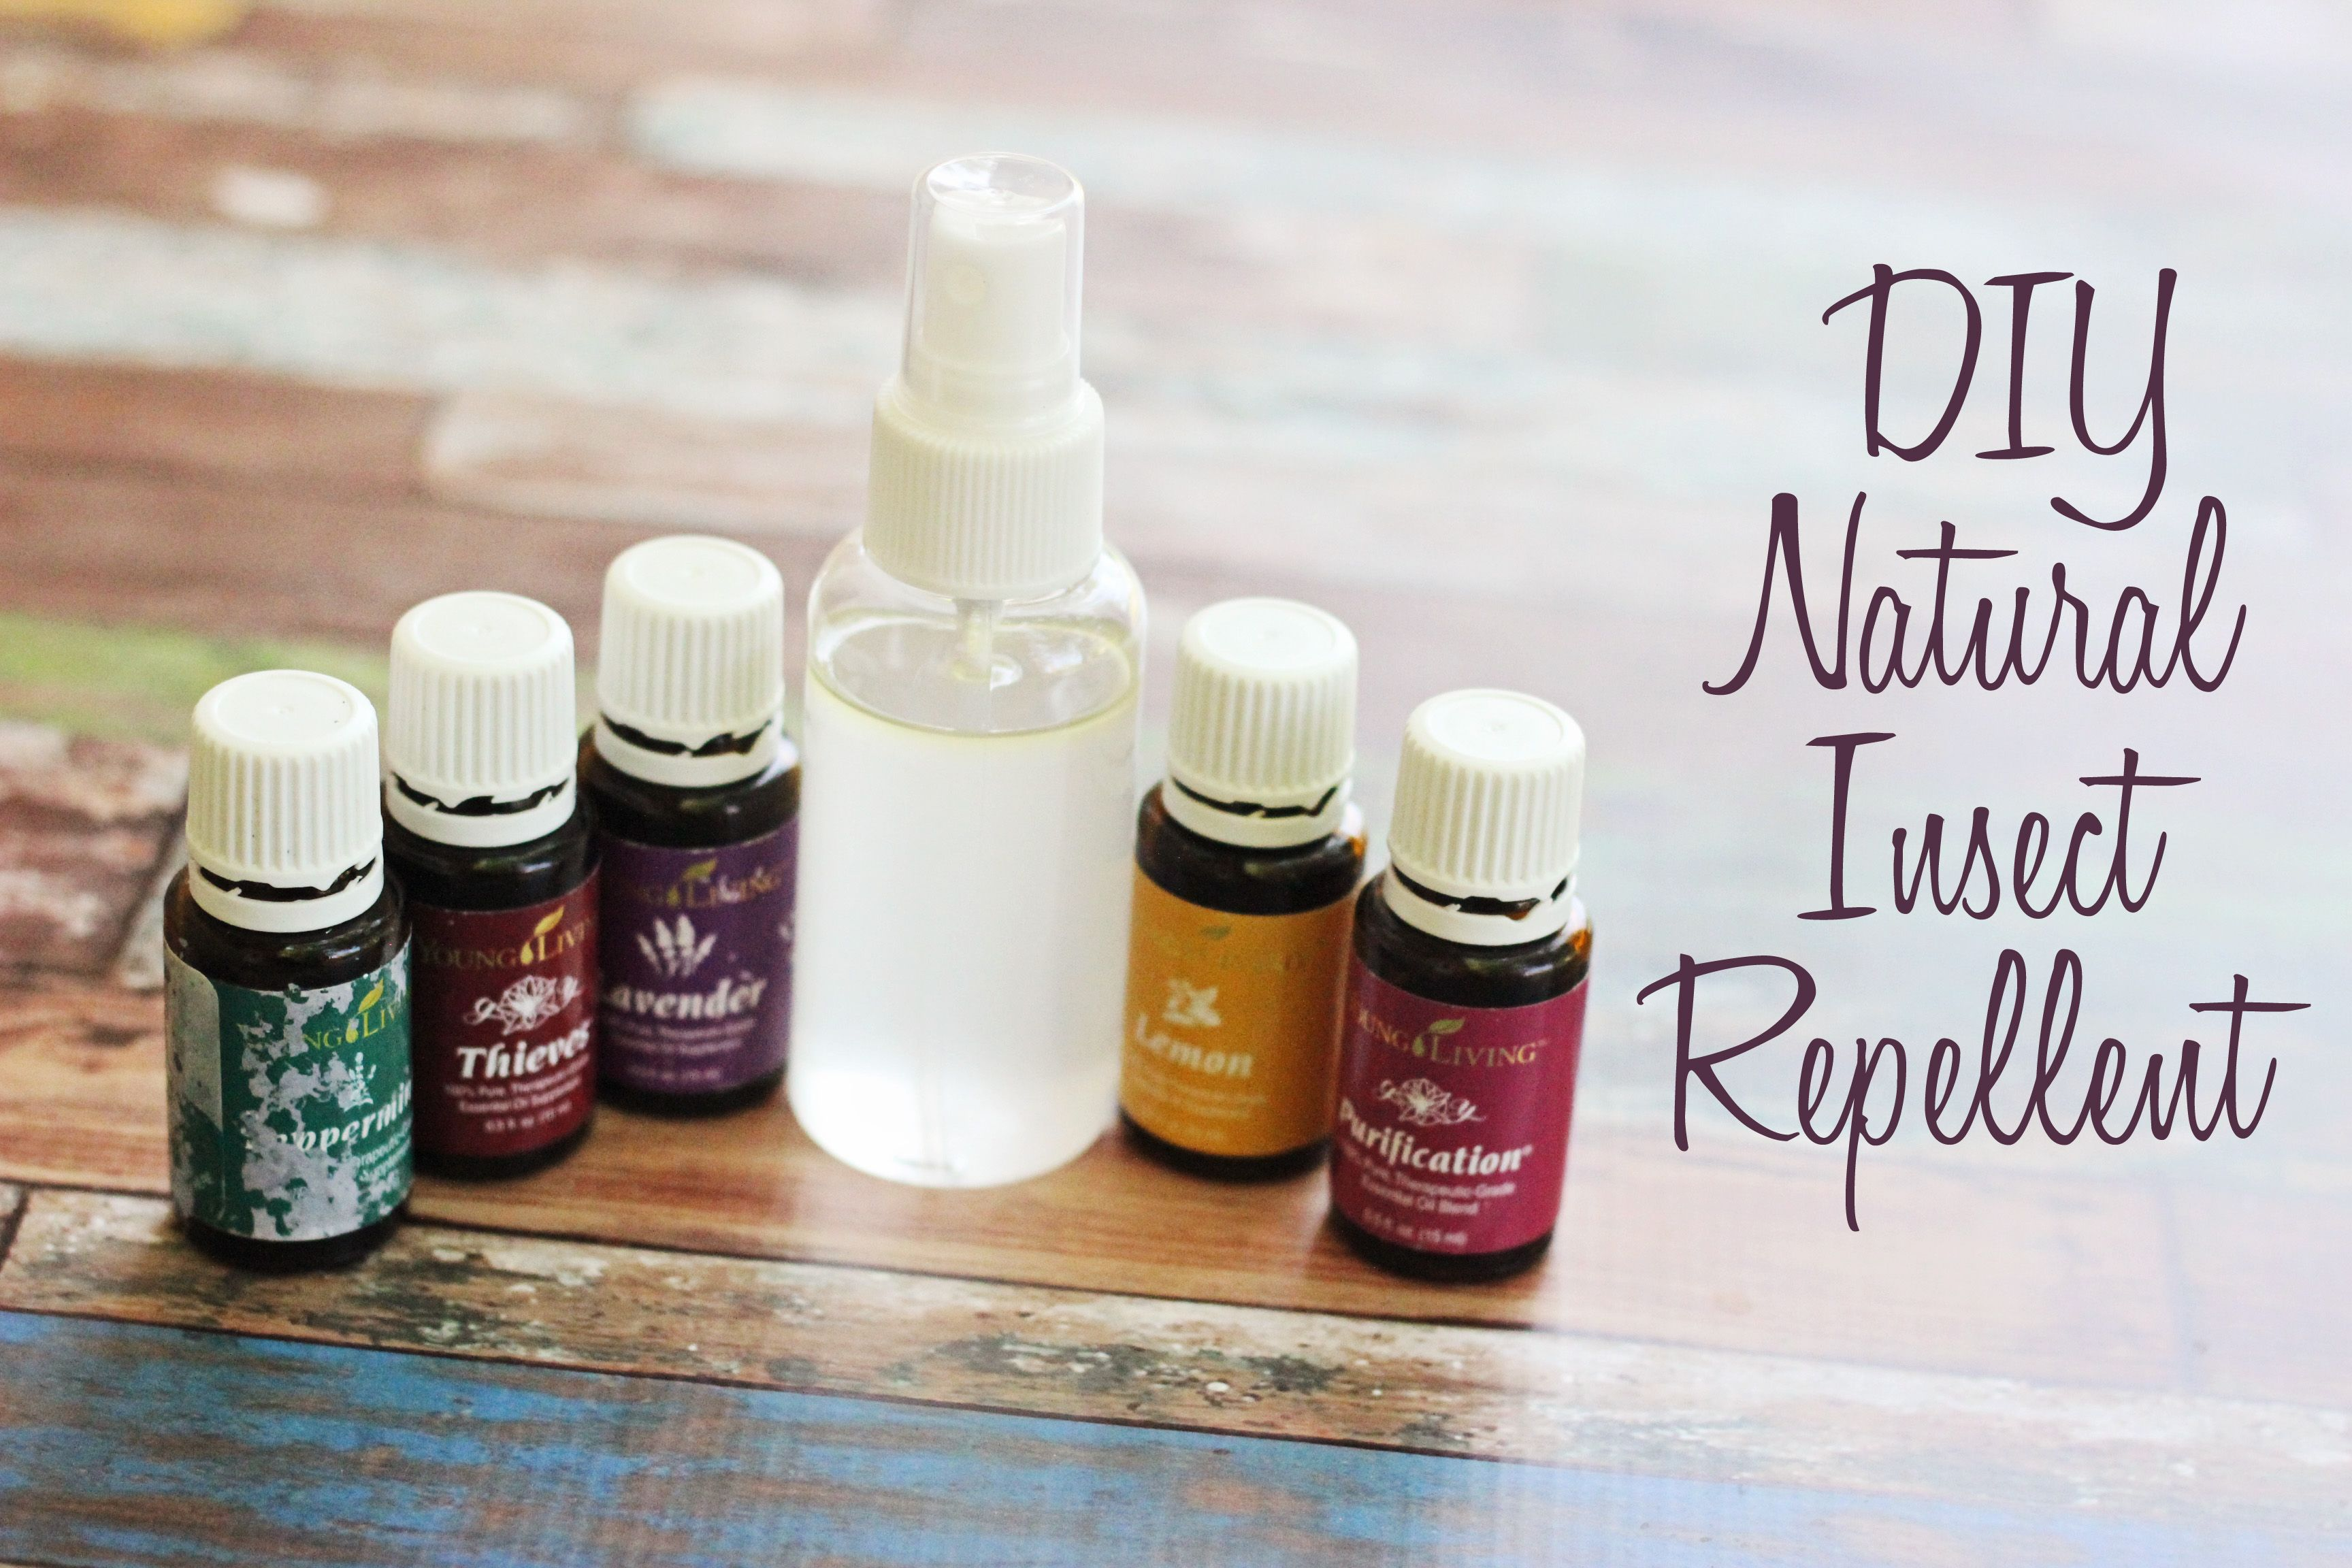 Diy Natural Insect Repellent  Sweet T Makes Three